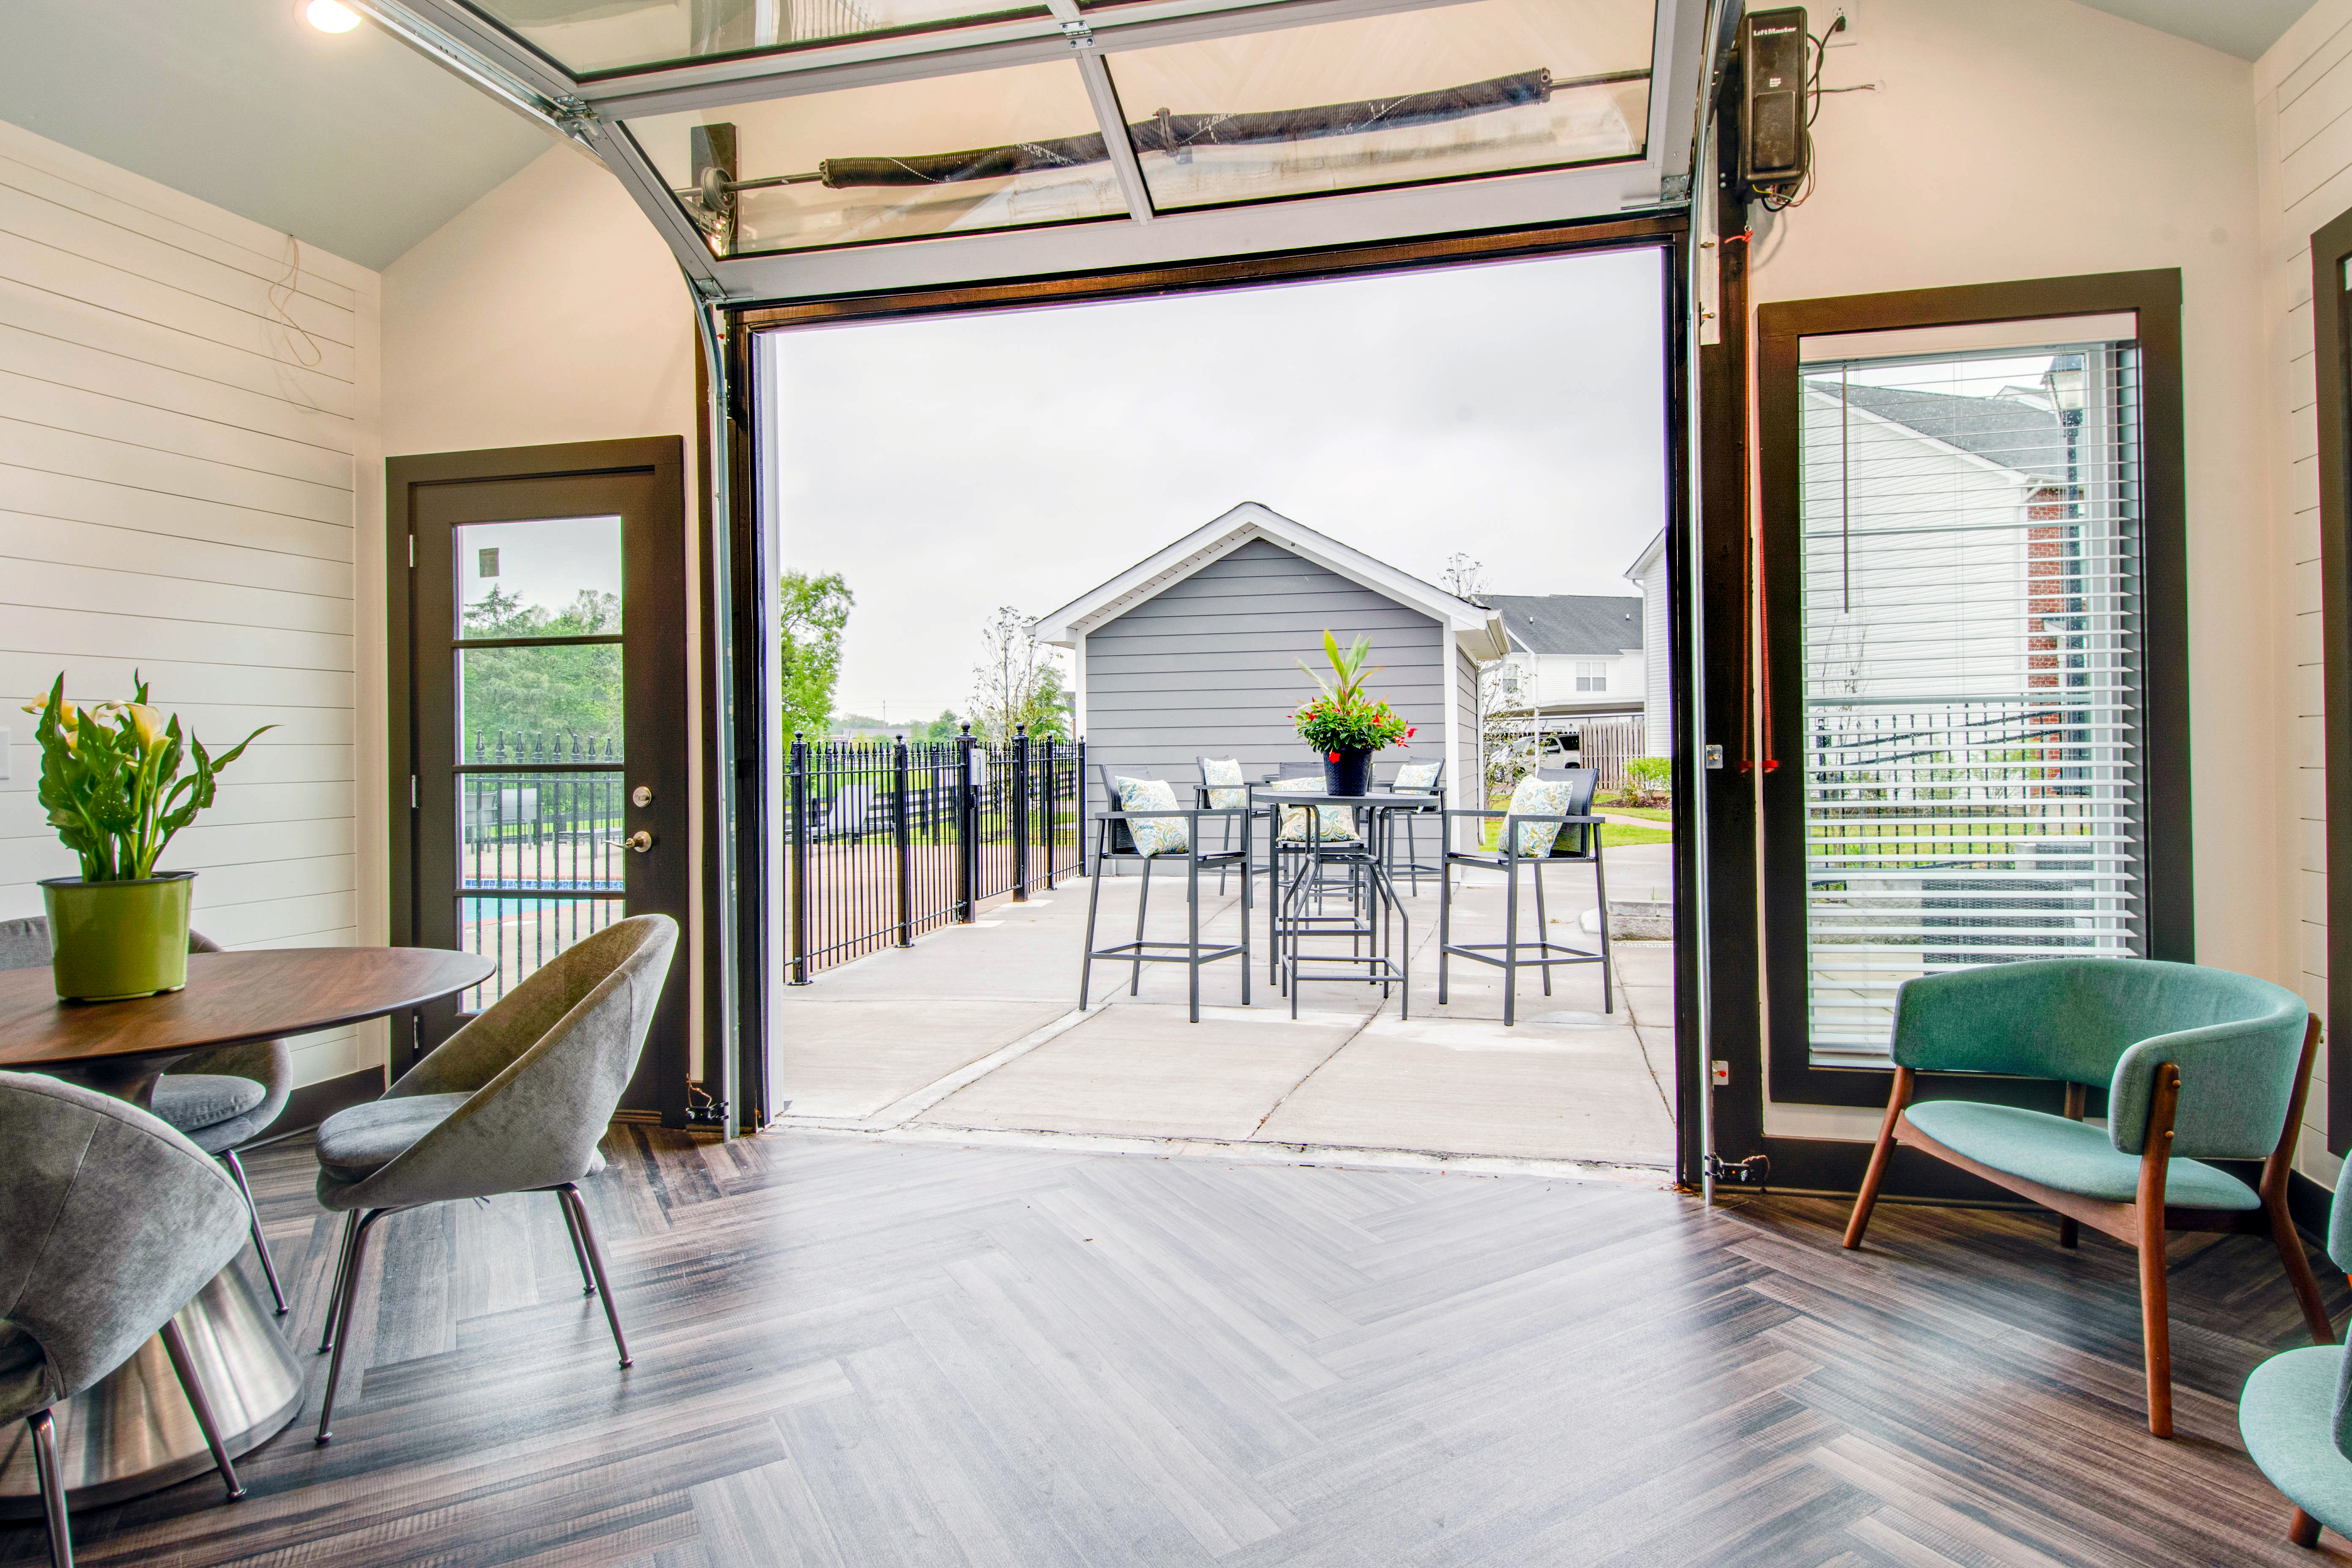 gorgeous patio and deck at Chapmans retreat in Spring Hill, Tennessee